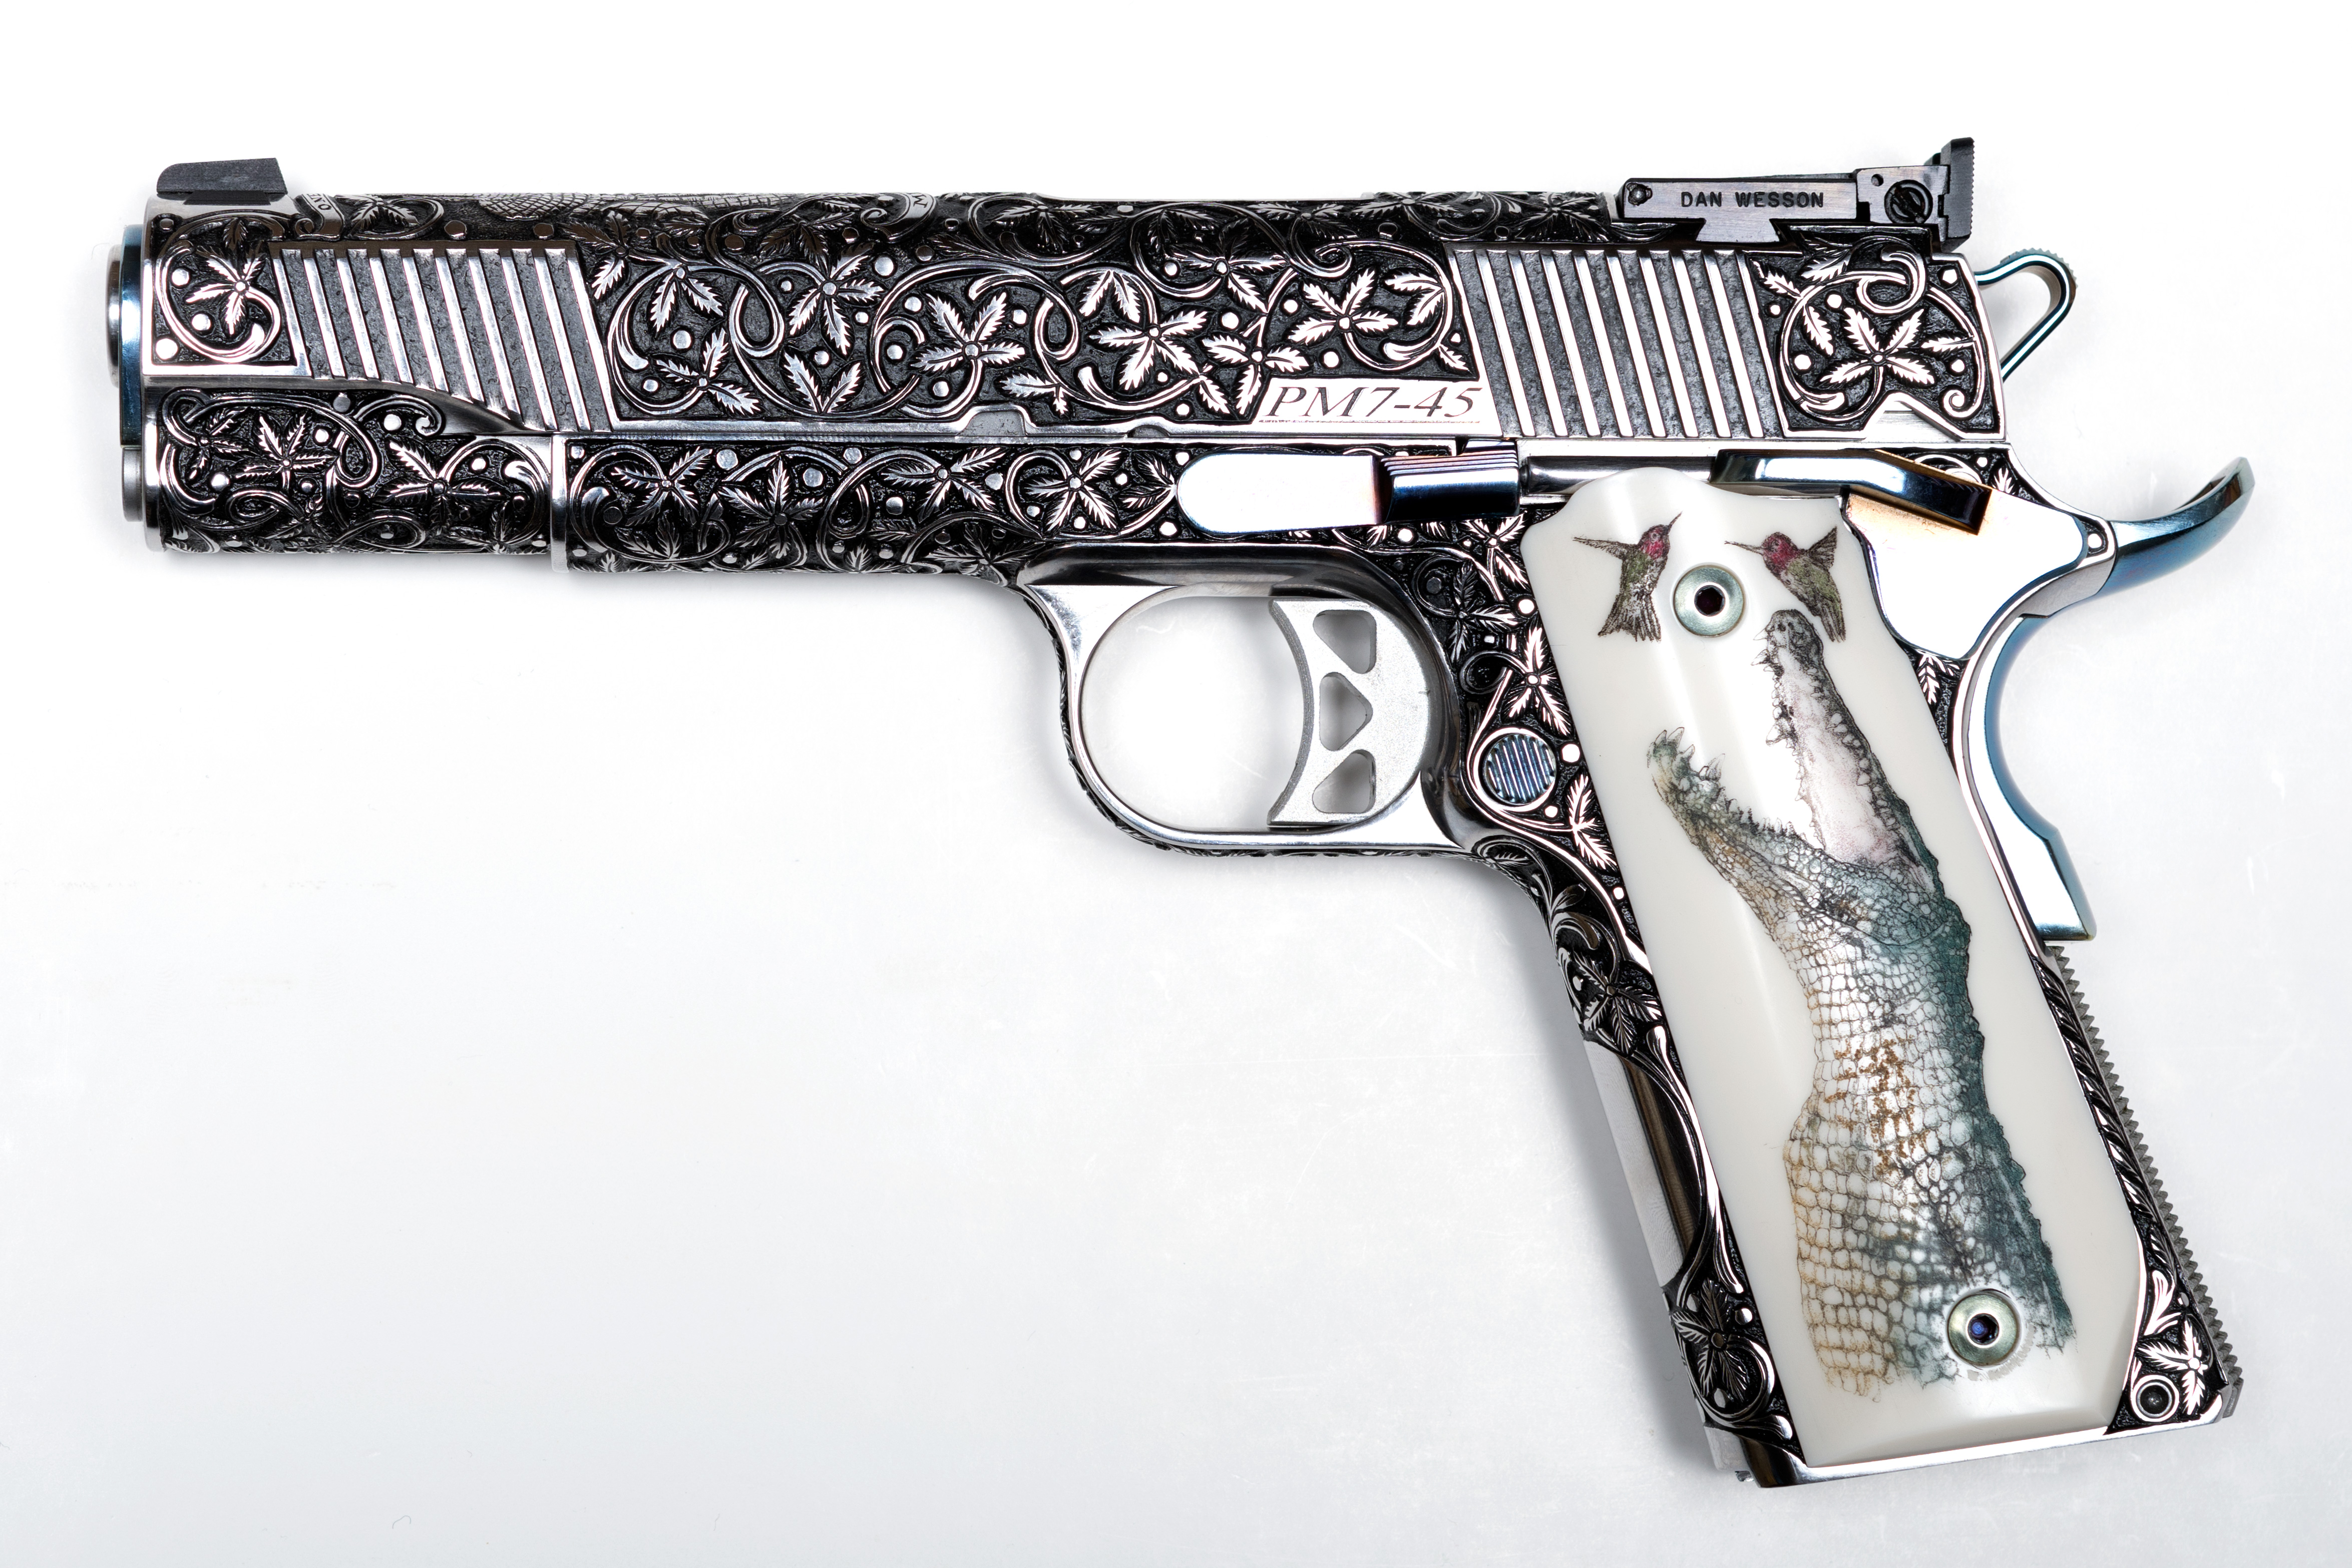 Dan Wesson Pointman Engraved 1911 45 ACP